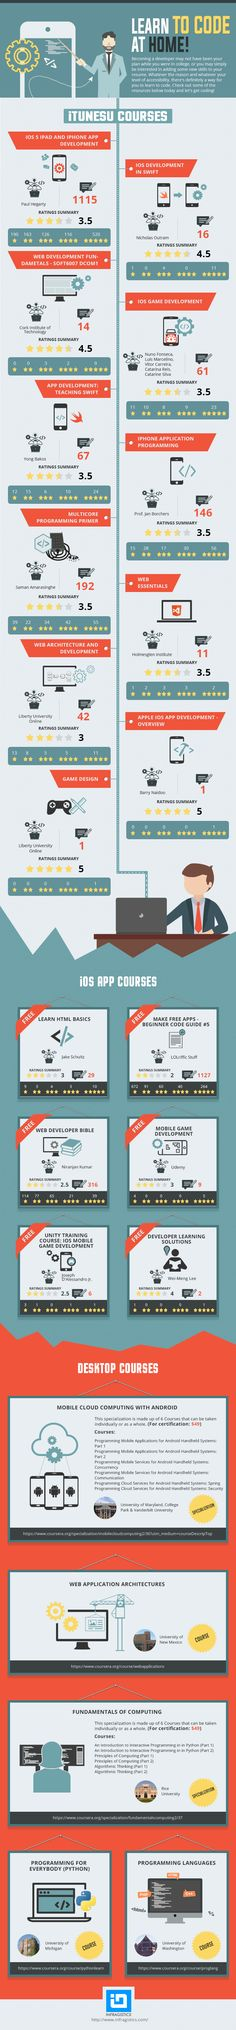 We're all really busy, but making time to learn a new skill is important, and often quite beneficial. Check out this great infographic detailing how to learn coding at home, with cool courses devoted to iOS game development, Swift, web dev, game design, and more!